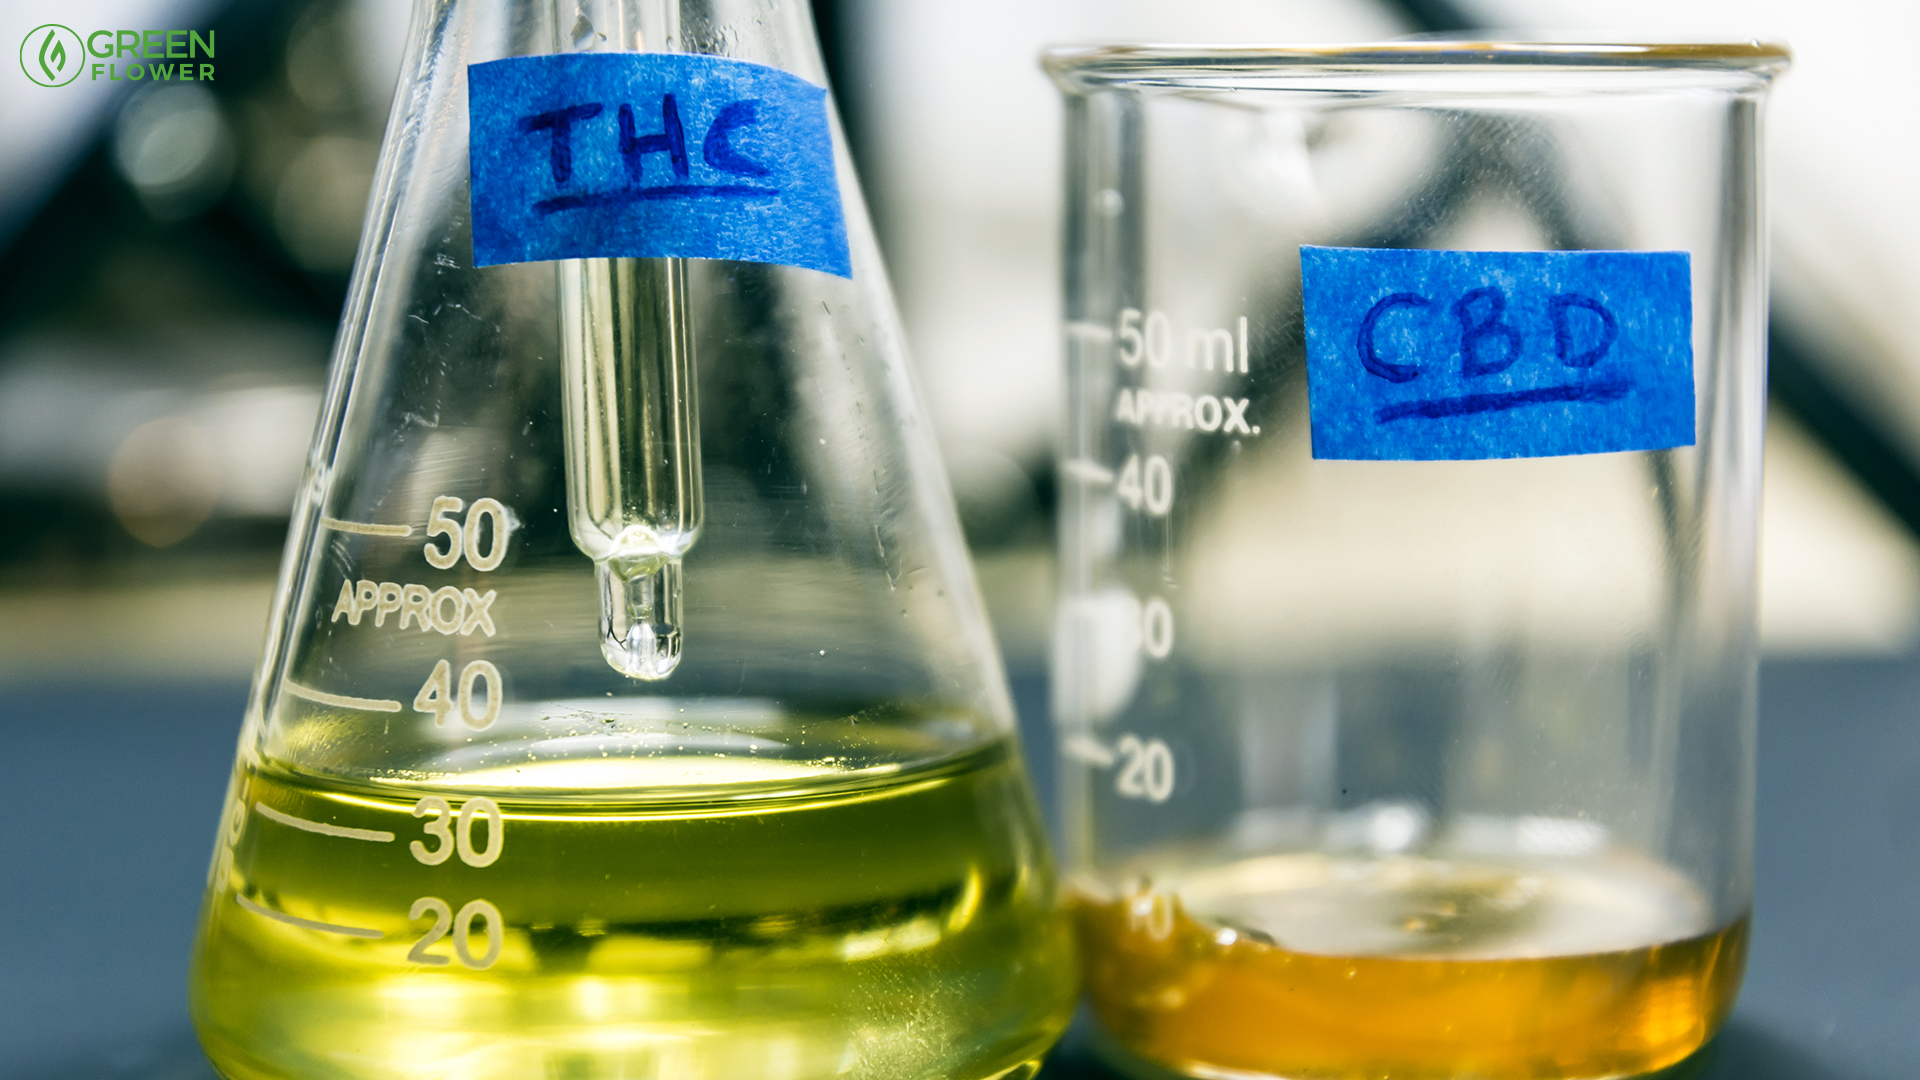 liquid thc and cbd in two scientific containers